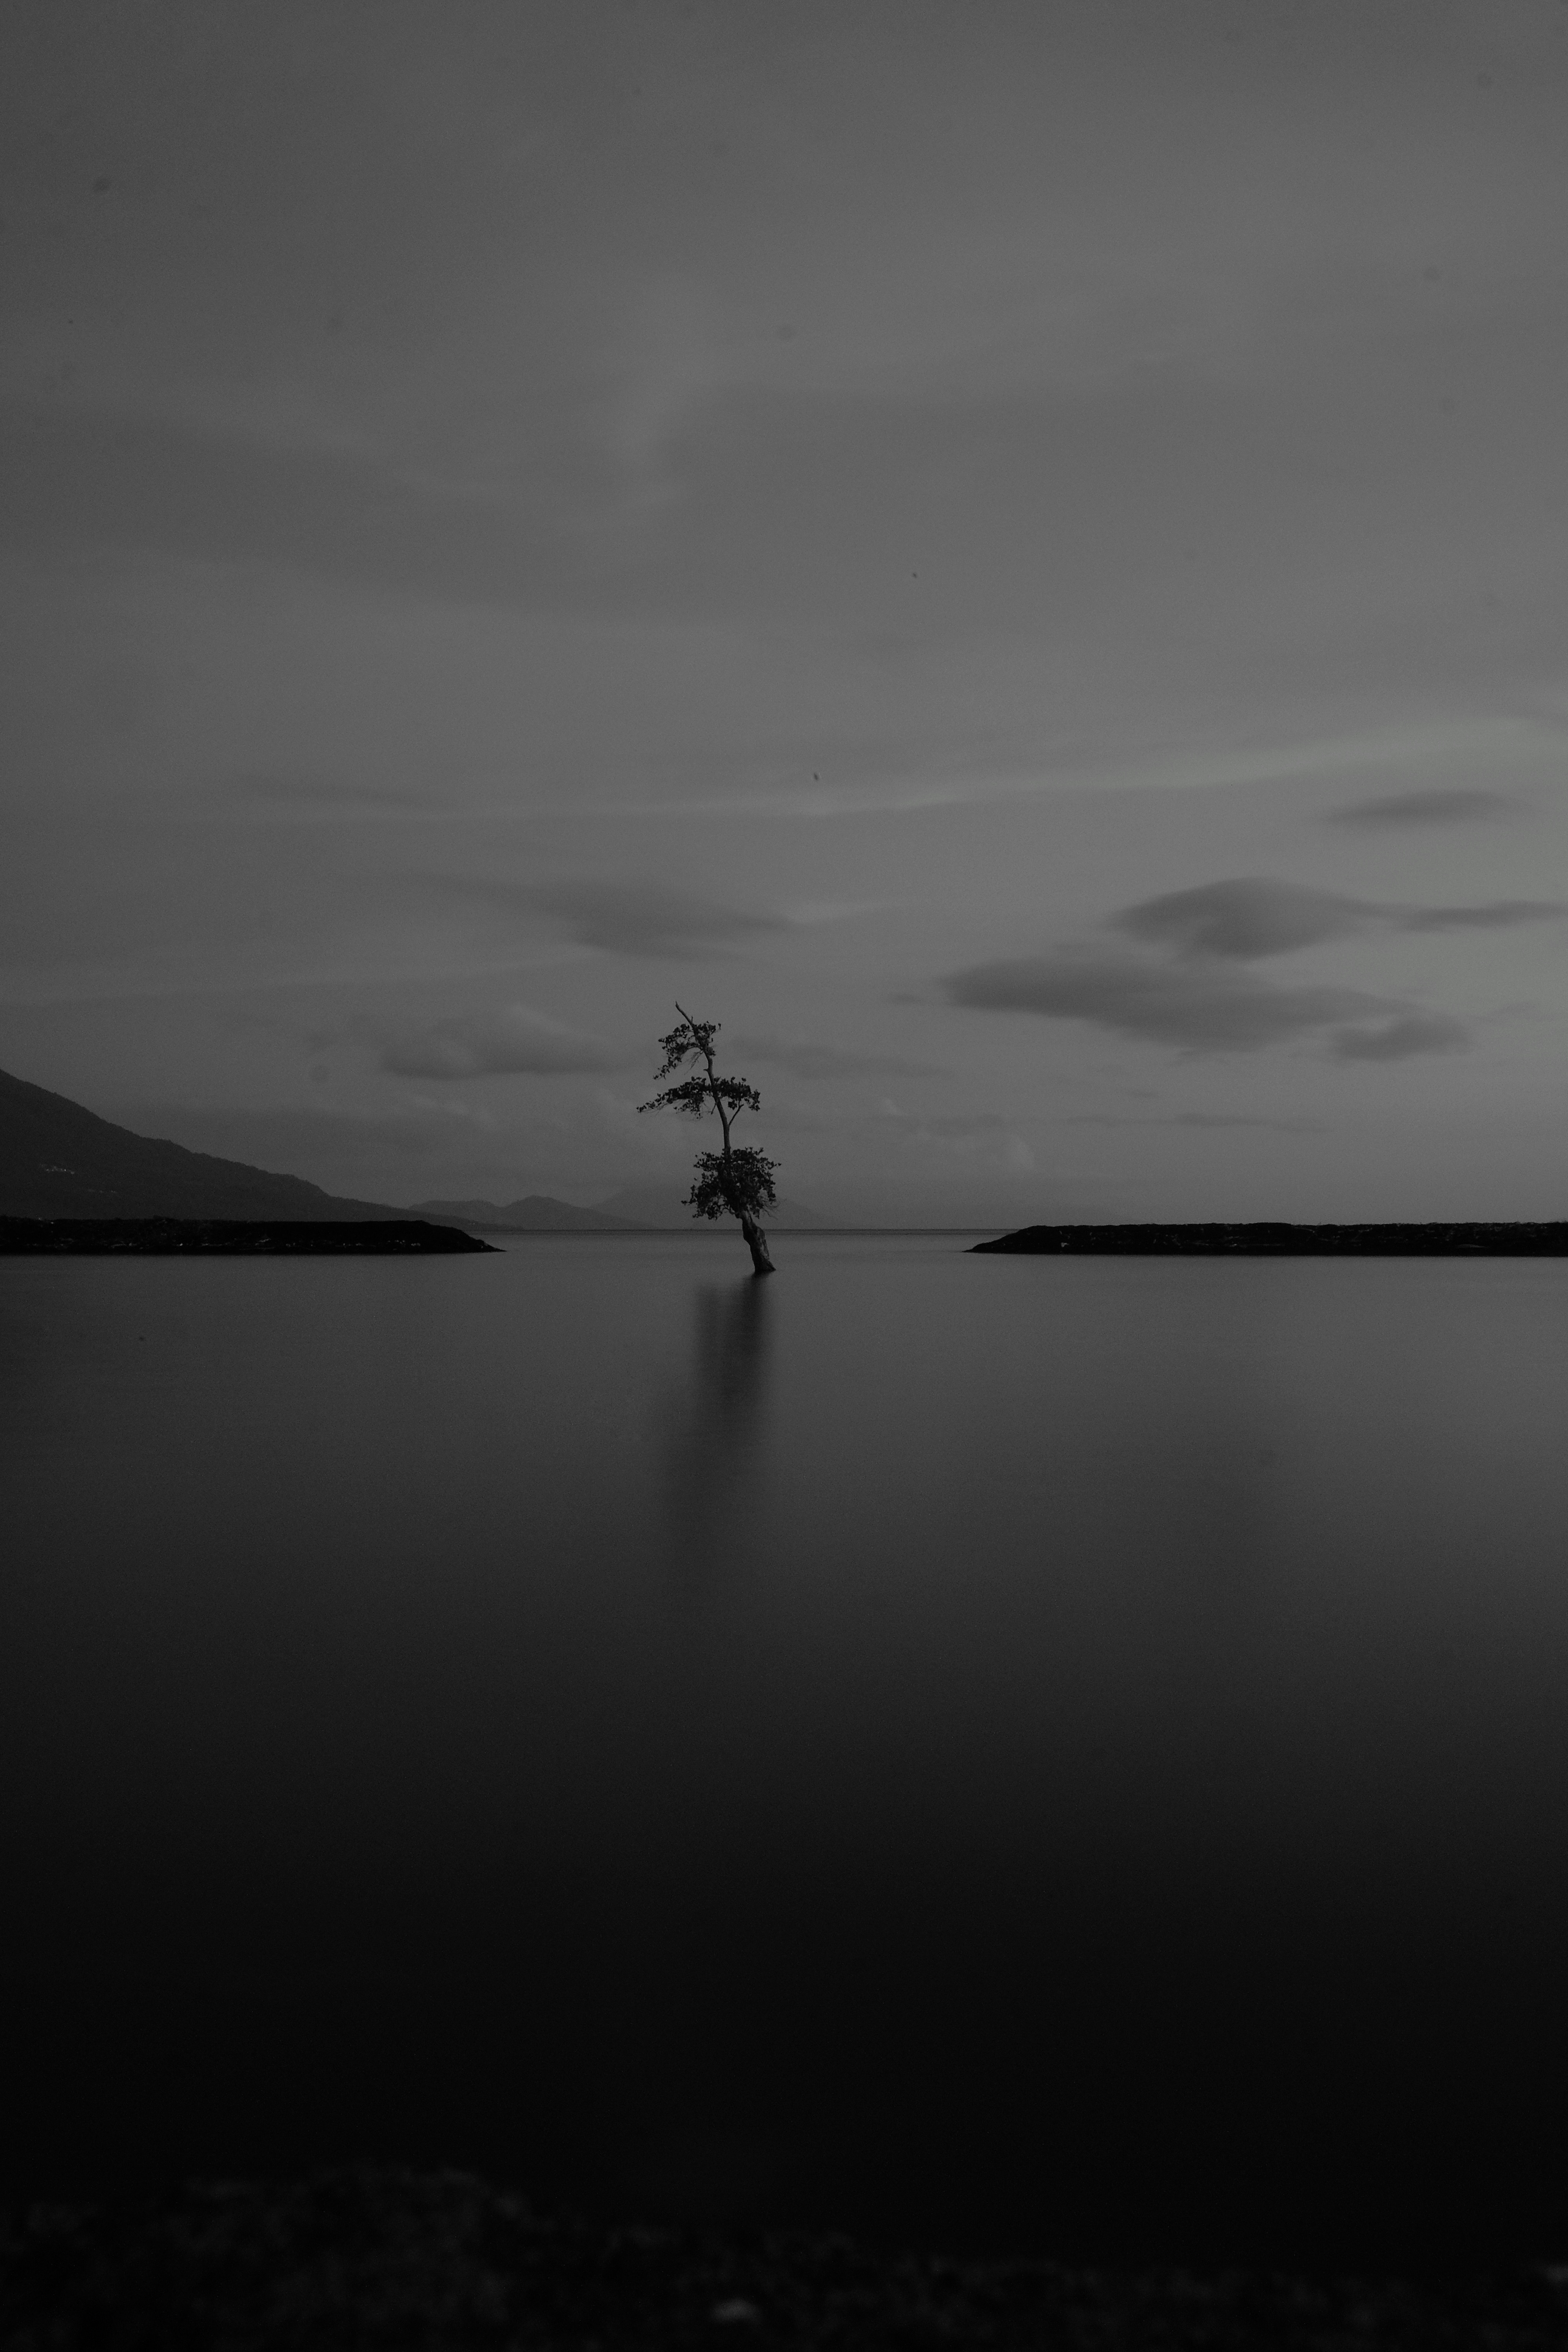 85708 download wallpaper Minimalism, Lake, Dark, Wood, Tree, Bw, Chb, Gloomy, Lonely screensavers and pictures for free